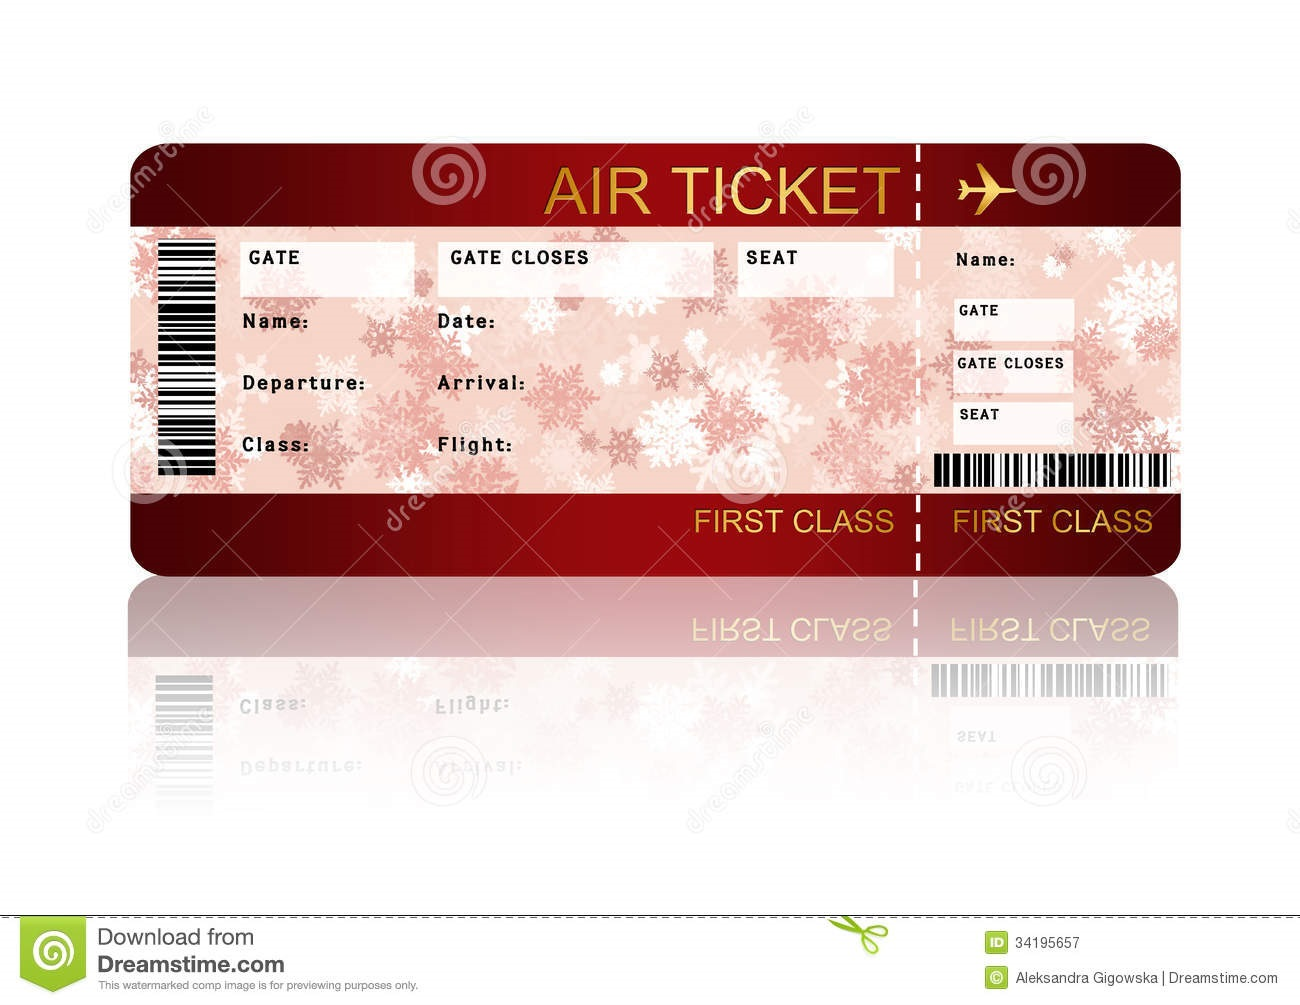 003 Incredible Free Fake Concert Ticket Template High Def Full